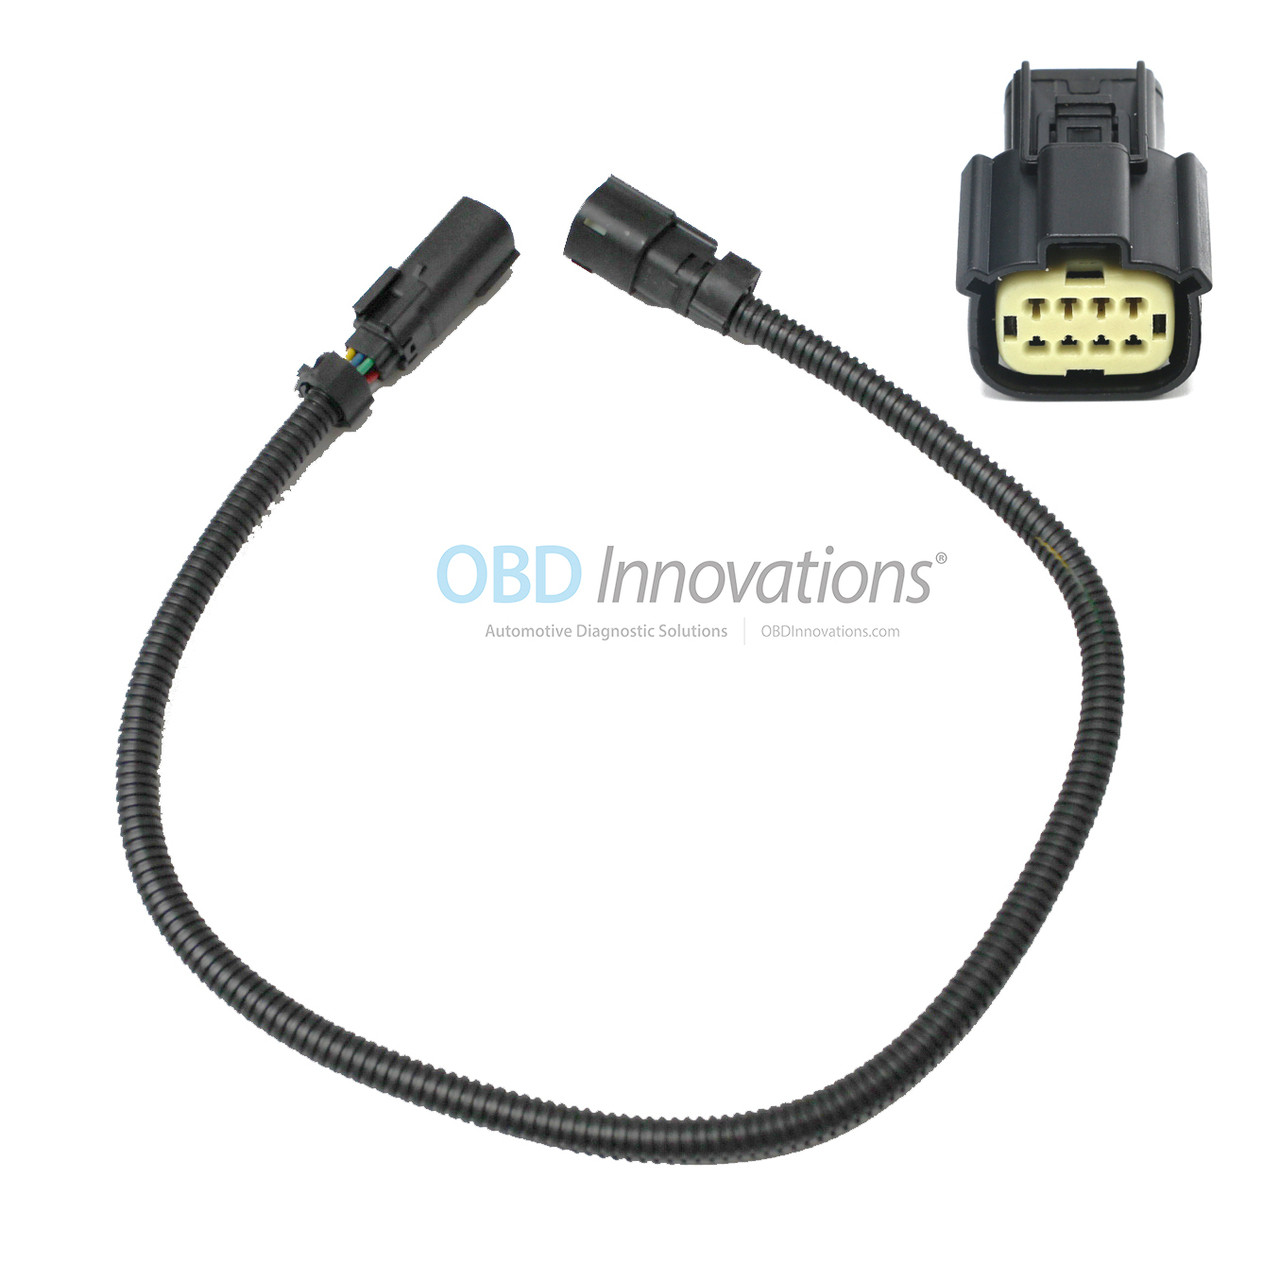 "8 pin 24/"" Front O2 Sensor Extension for 11-14 Ford Mustang V6 3.7L"